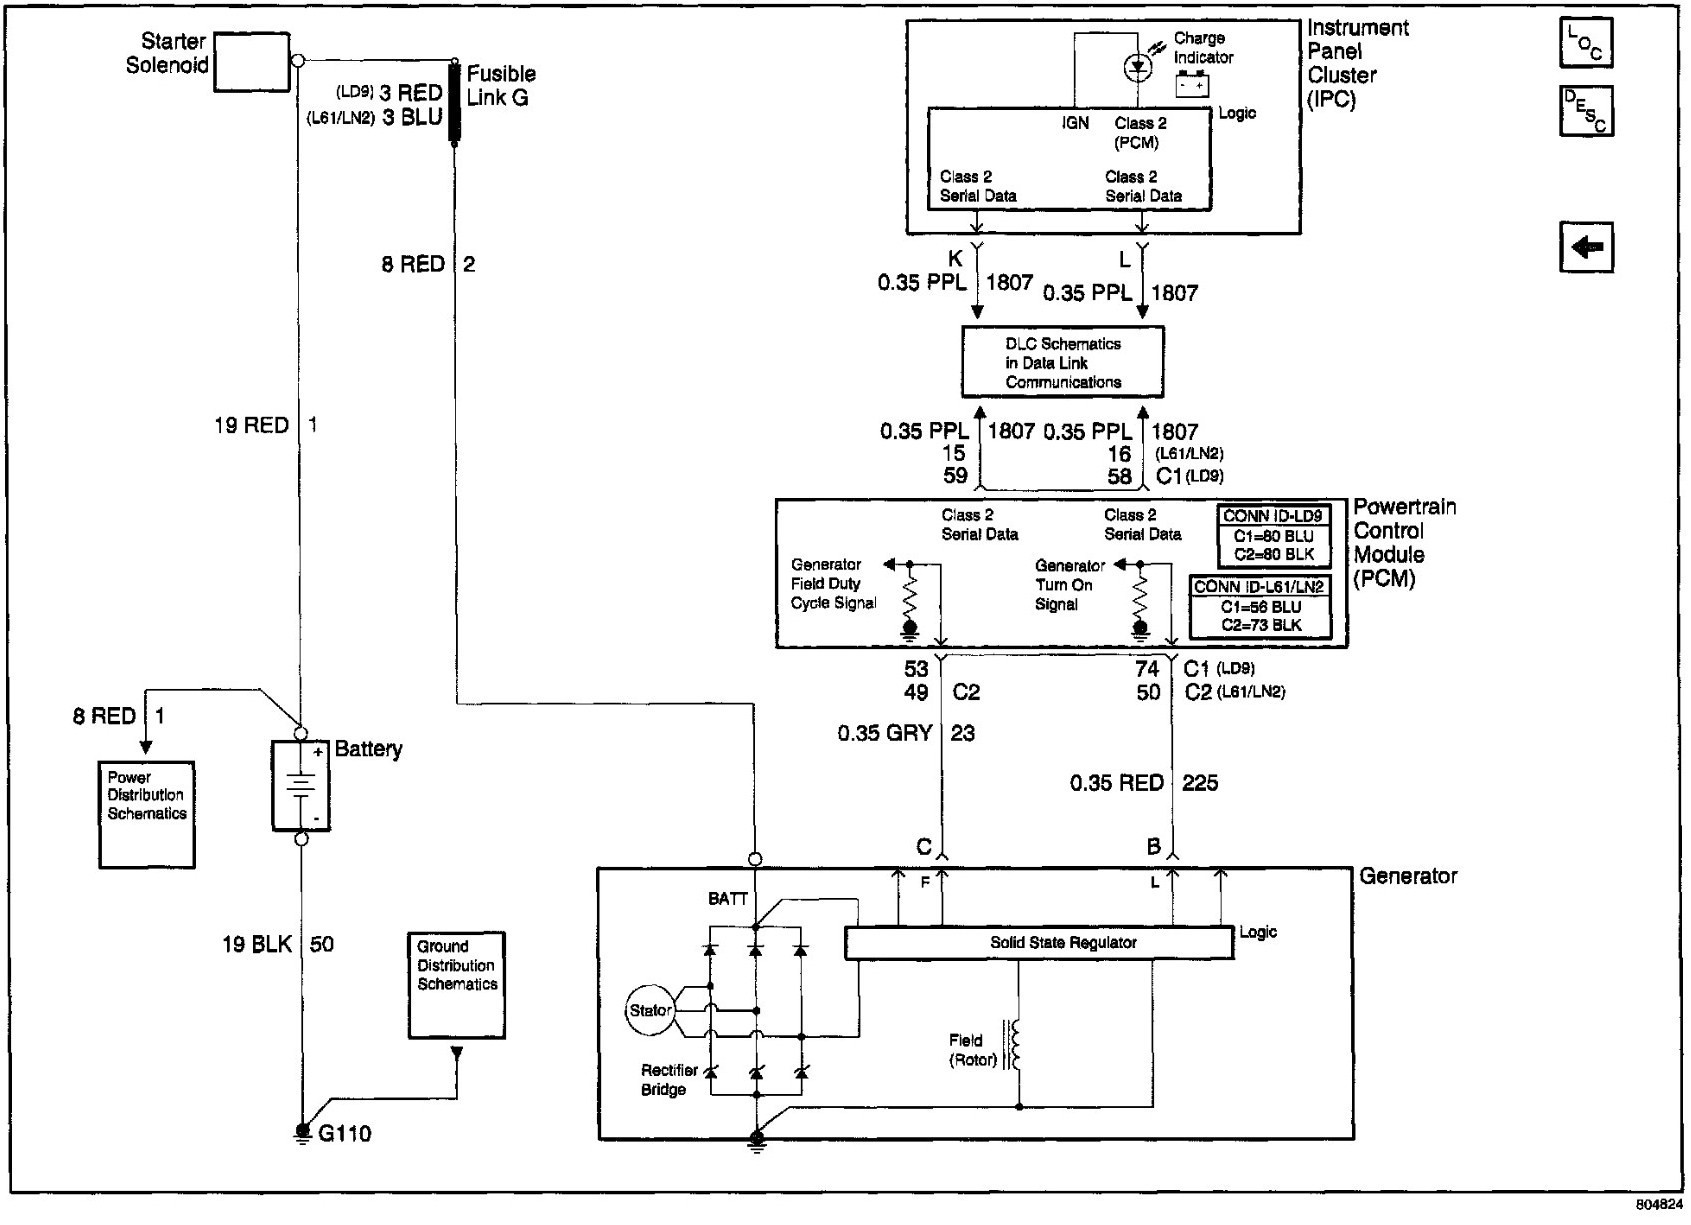 hight resolution of raven scs 440 wiring diagram wiring diagrams schema farmall 450 hydraulics flow diagram raven 4400 wiring